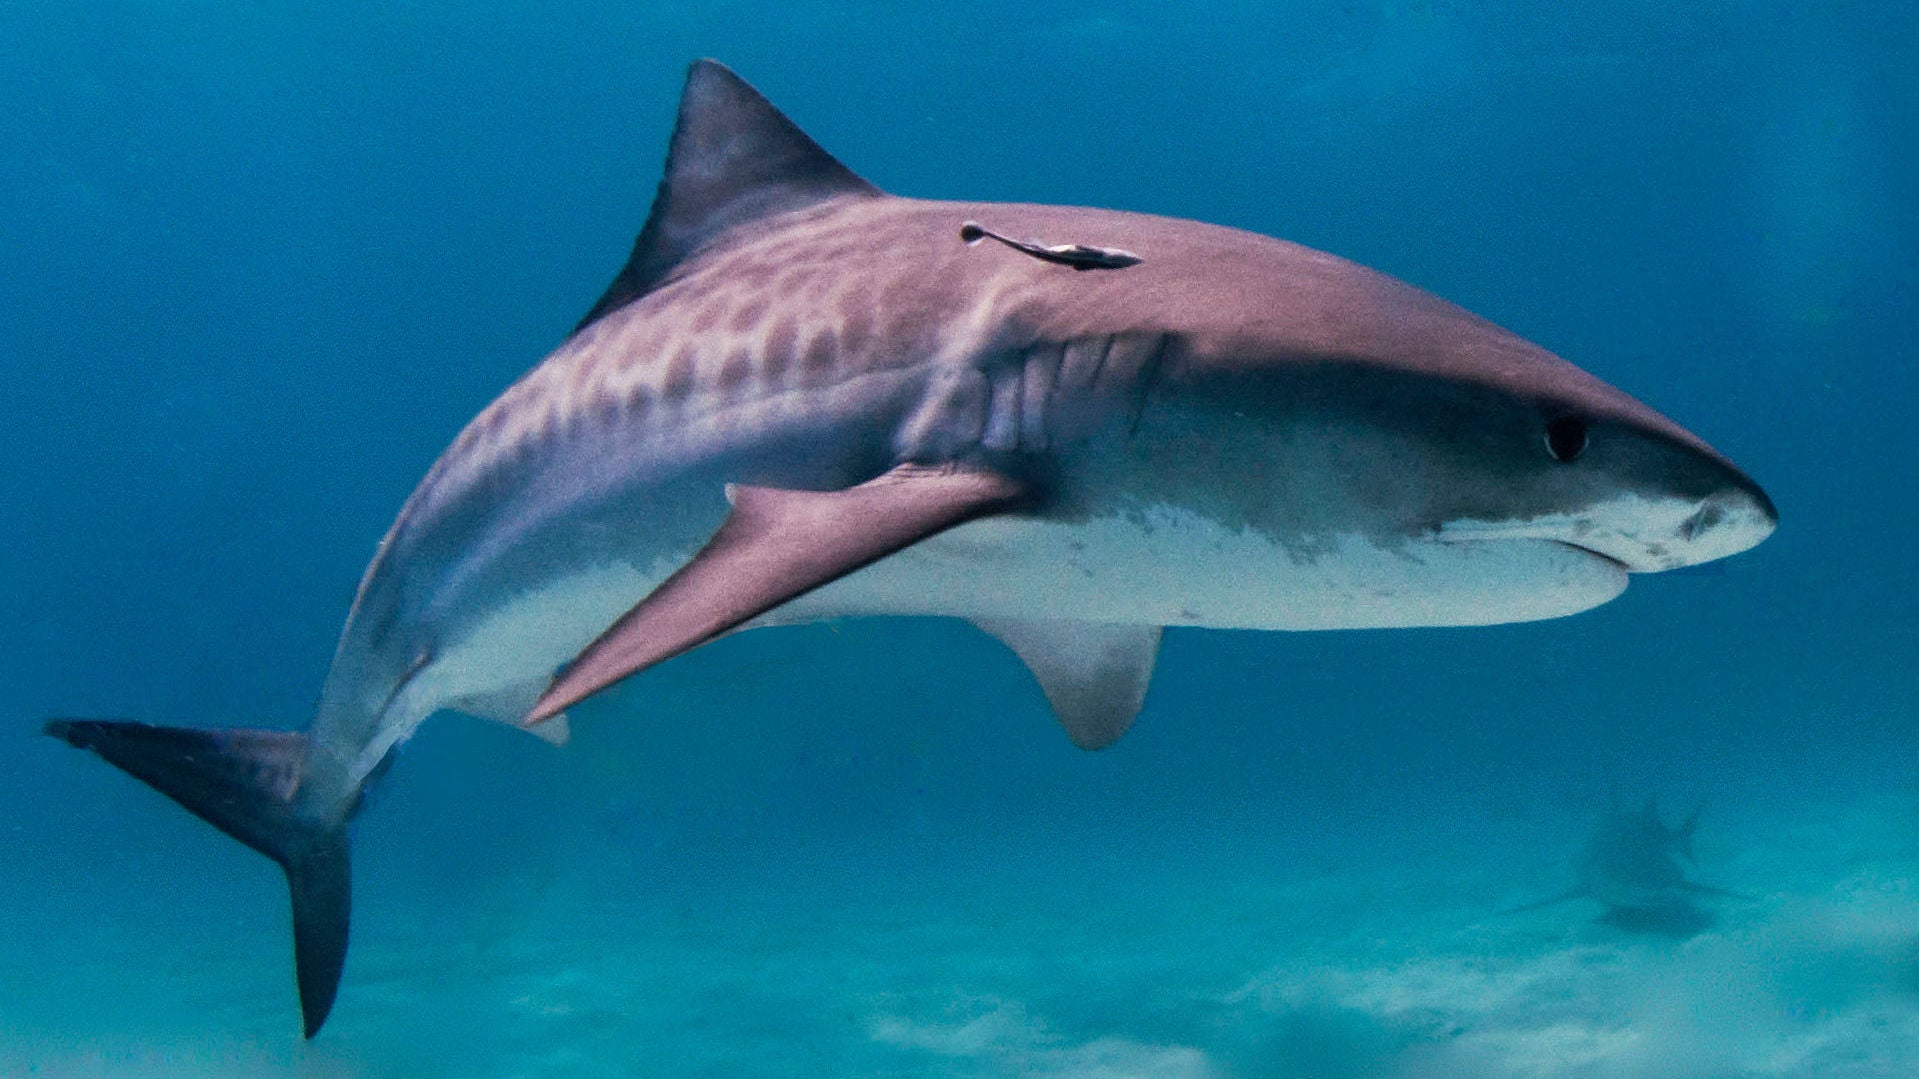 How Are Doves And Sparrows Ending Up Inside Baby Sharks?